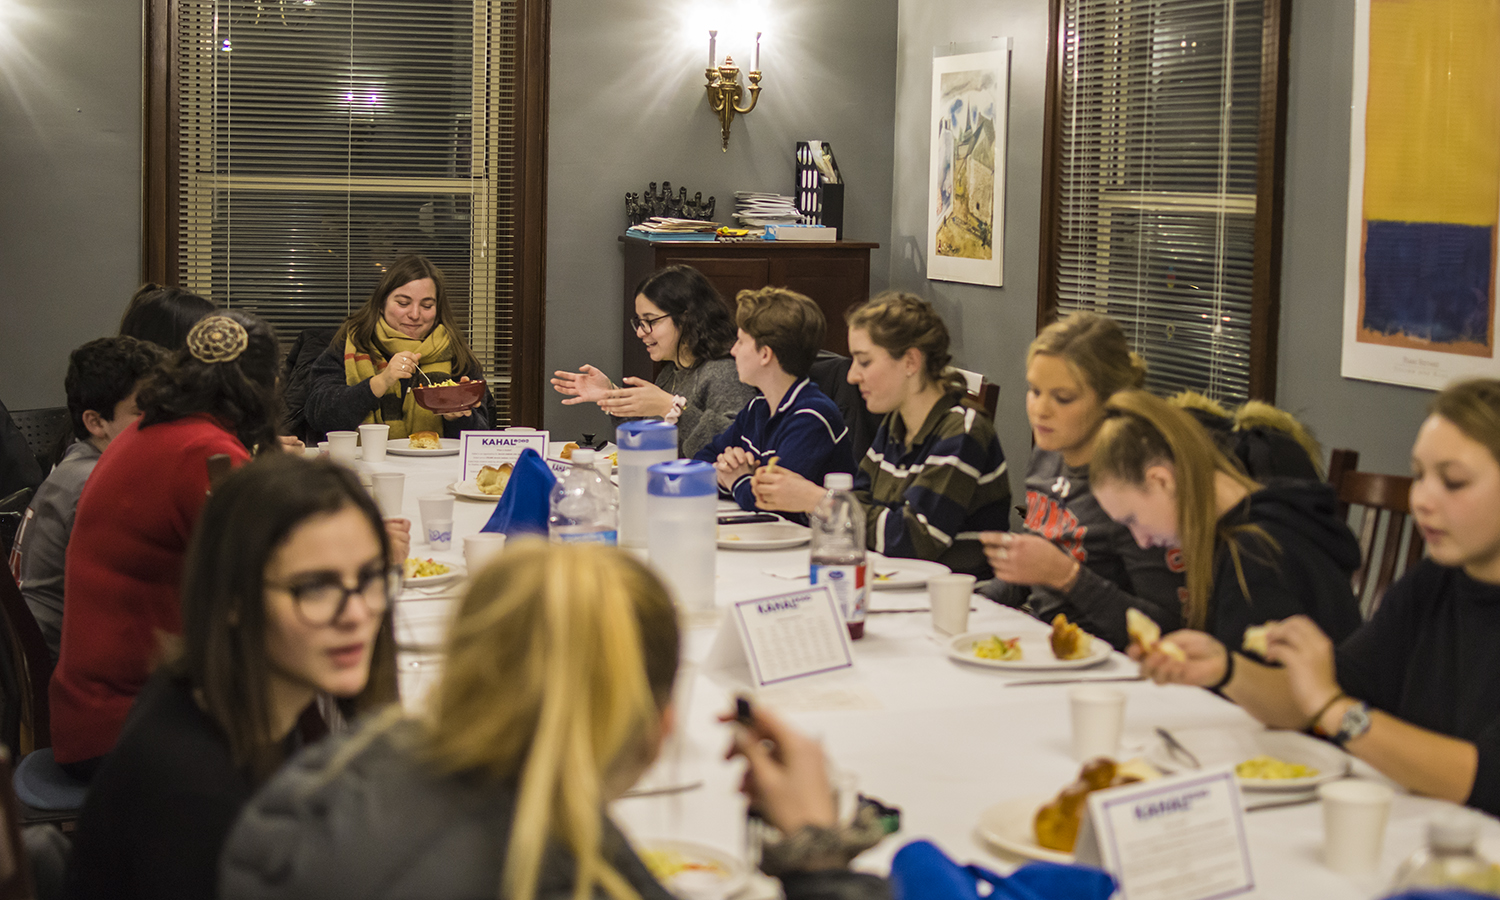 Students enjoy Shabbat Dinner at the Abbe Center for Jewish Life on Friday evening.